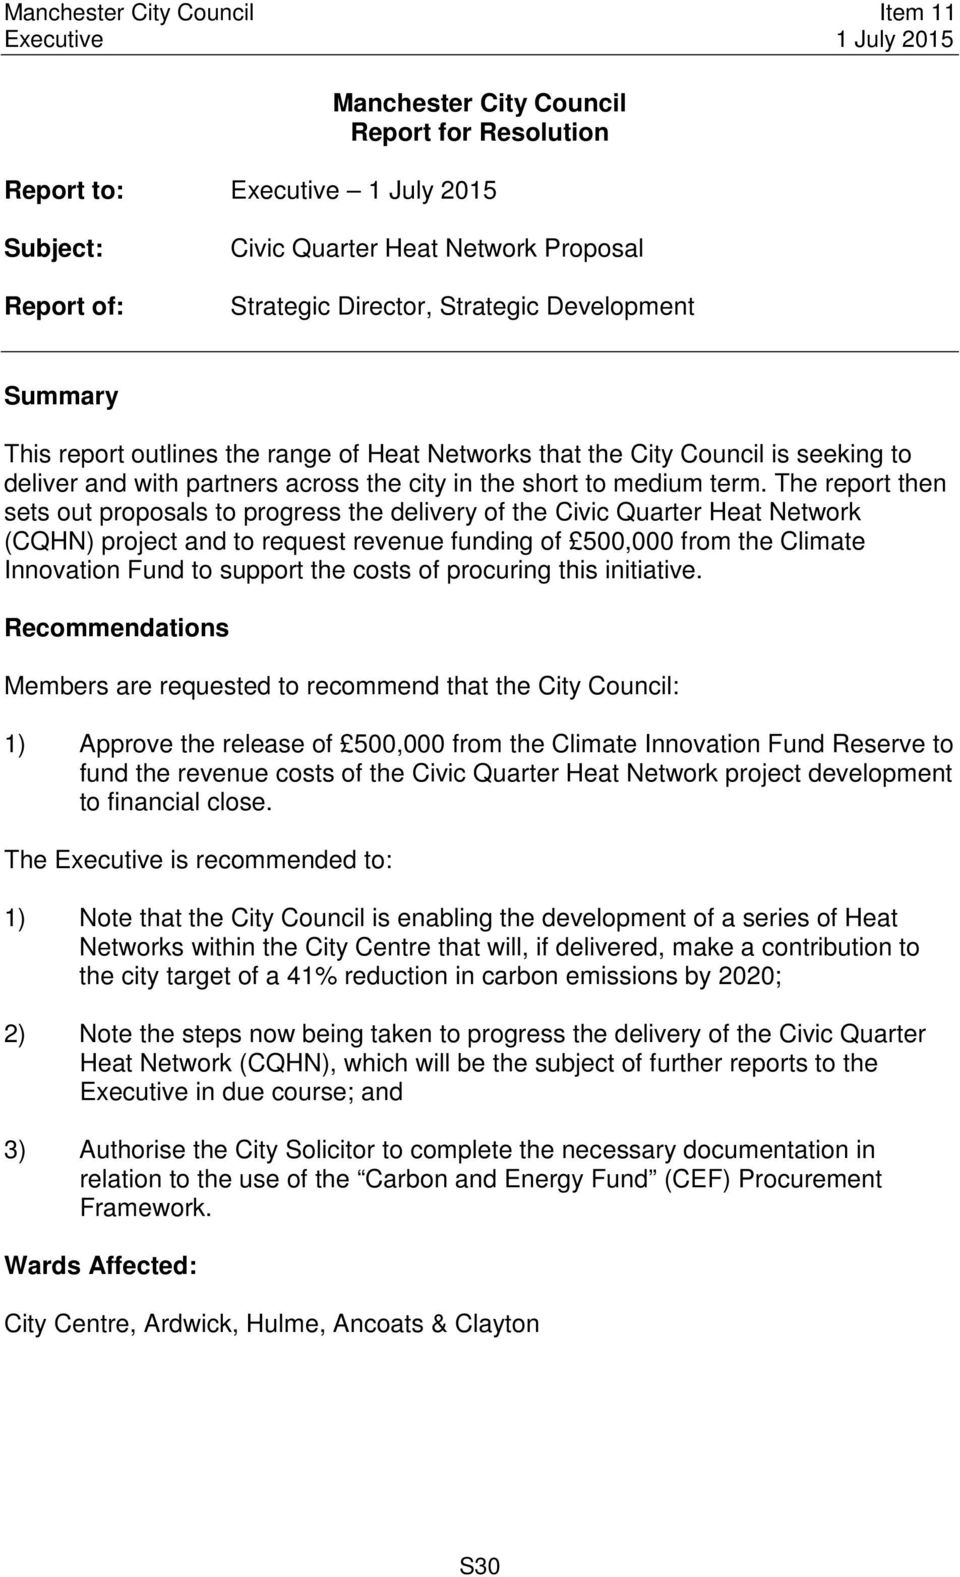 The report then sets out proposals to progress the delivery of the Civic Quarter Heat Network (CQHN) project and to request revenue funding of 500,000 from the Climate Innovation Fund to support the